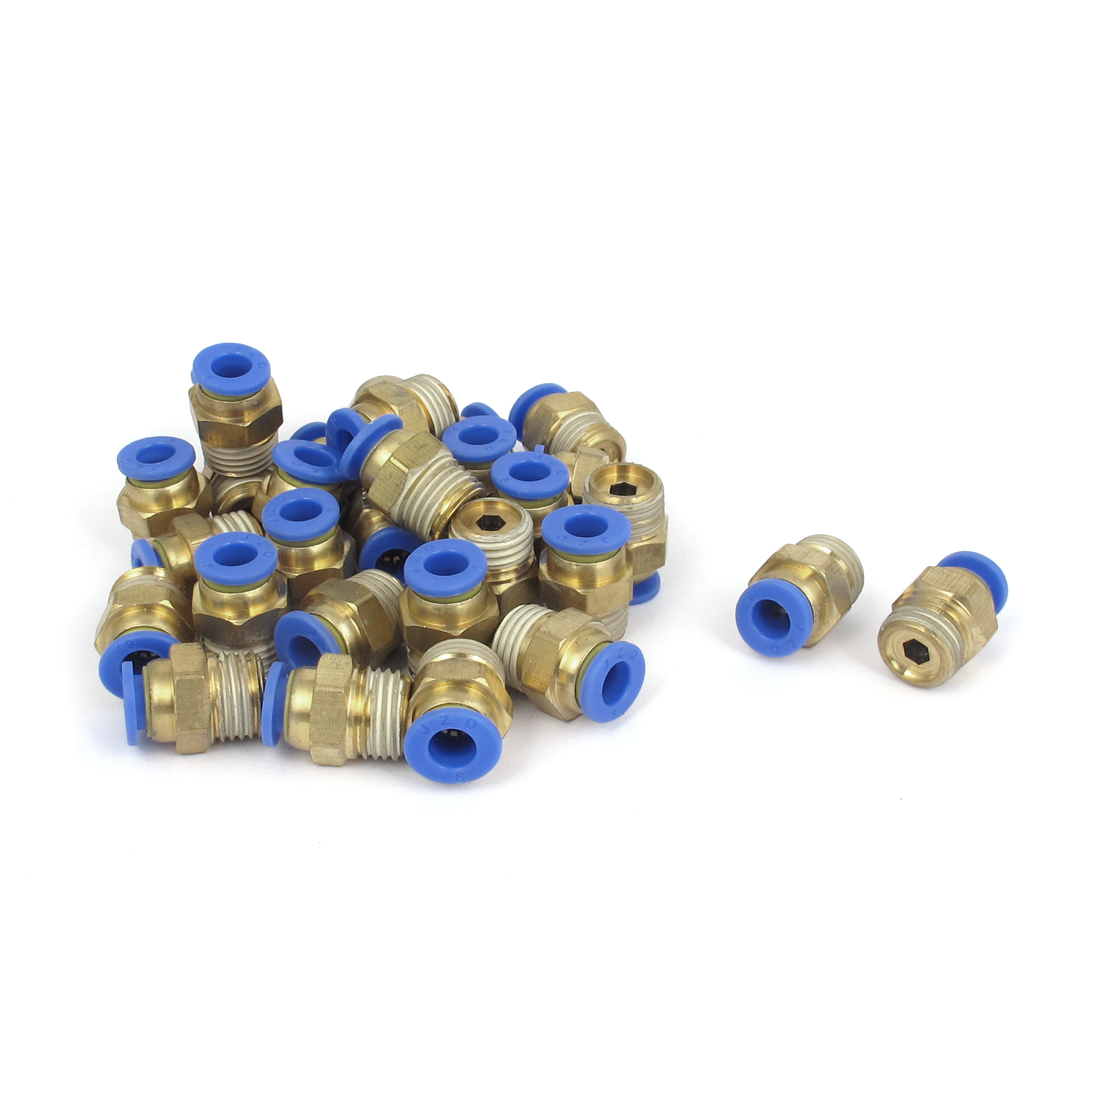 30 Pcs 1/4BSP Male Threaded 6mm OD Tube One Touch Push in Quick Connect Fittings